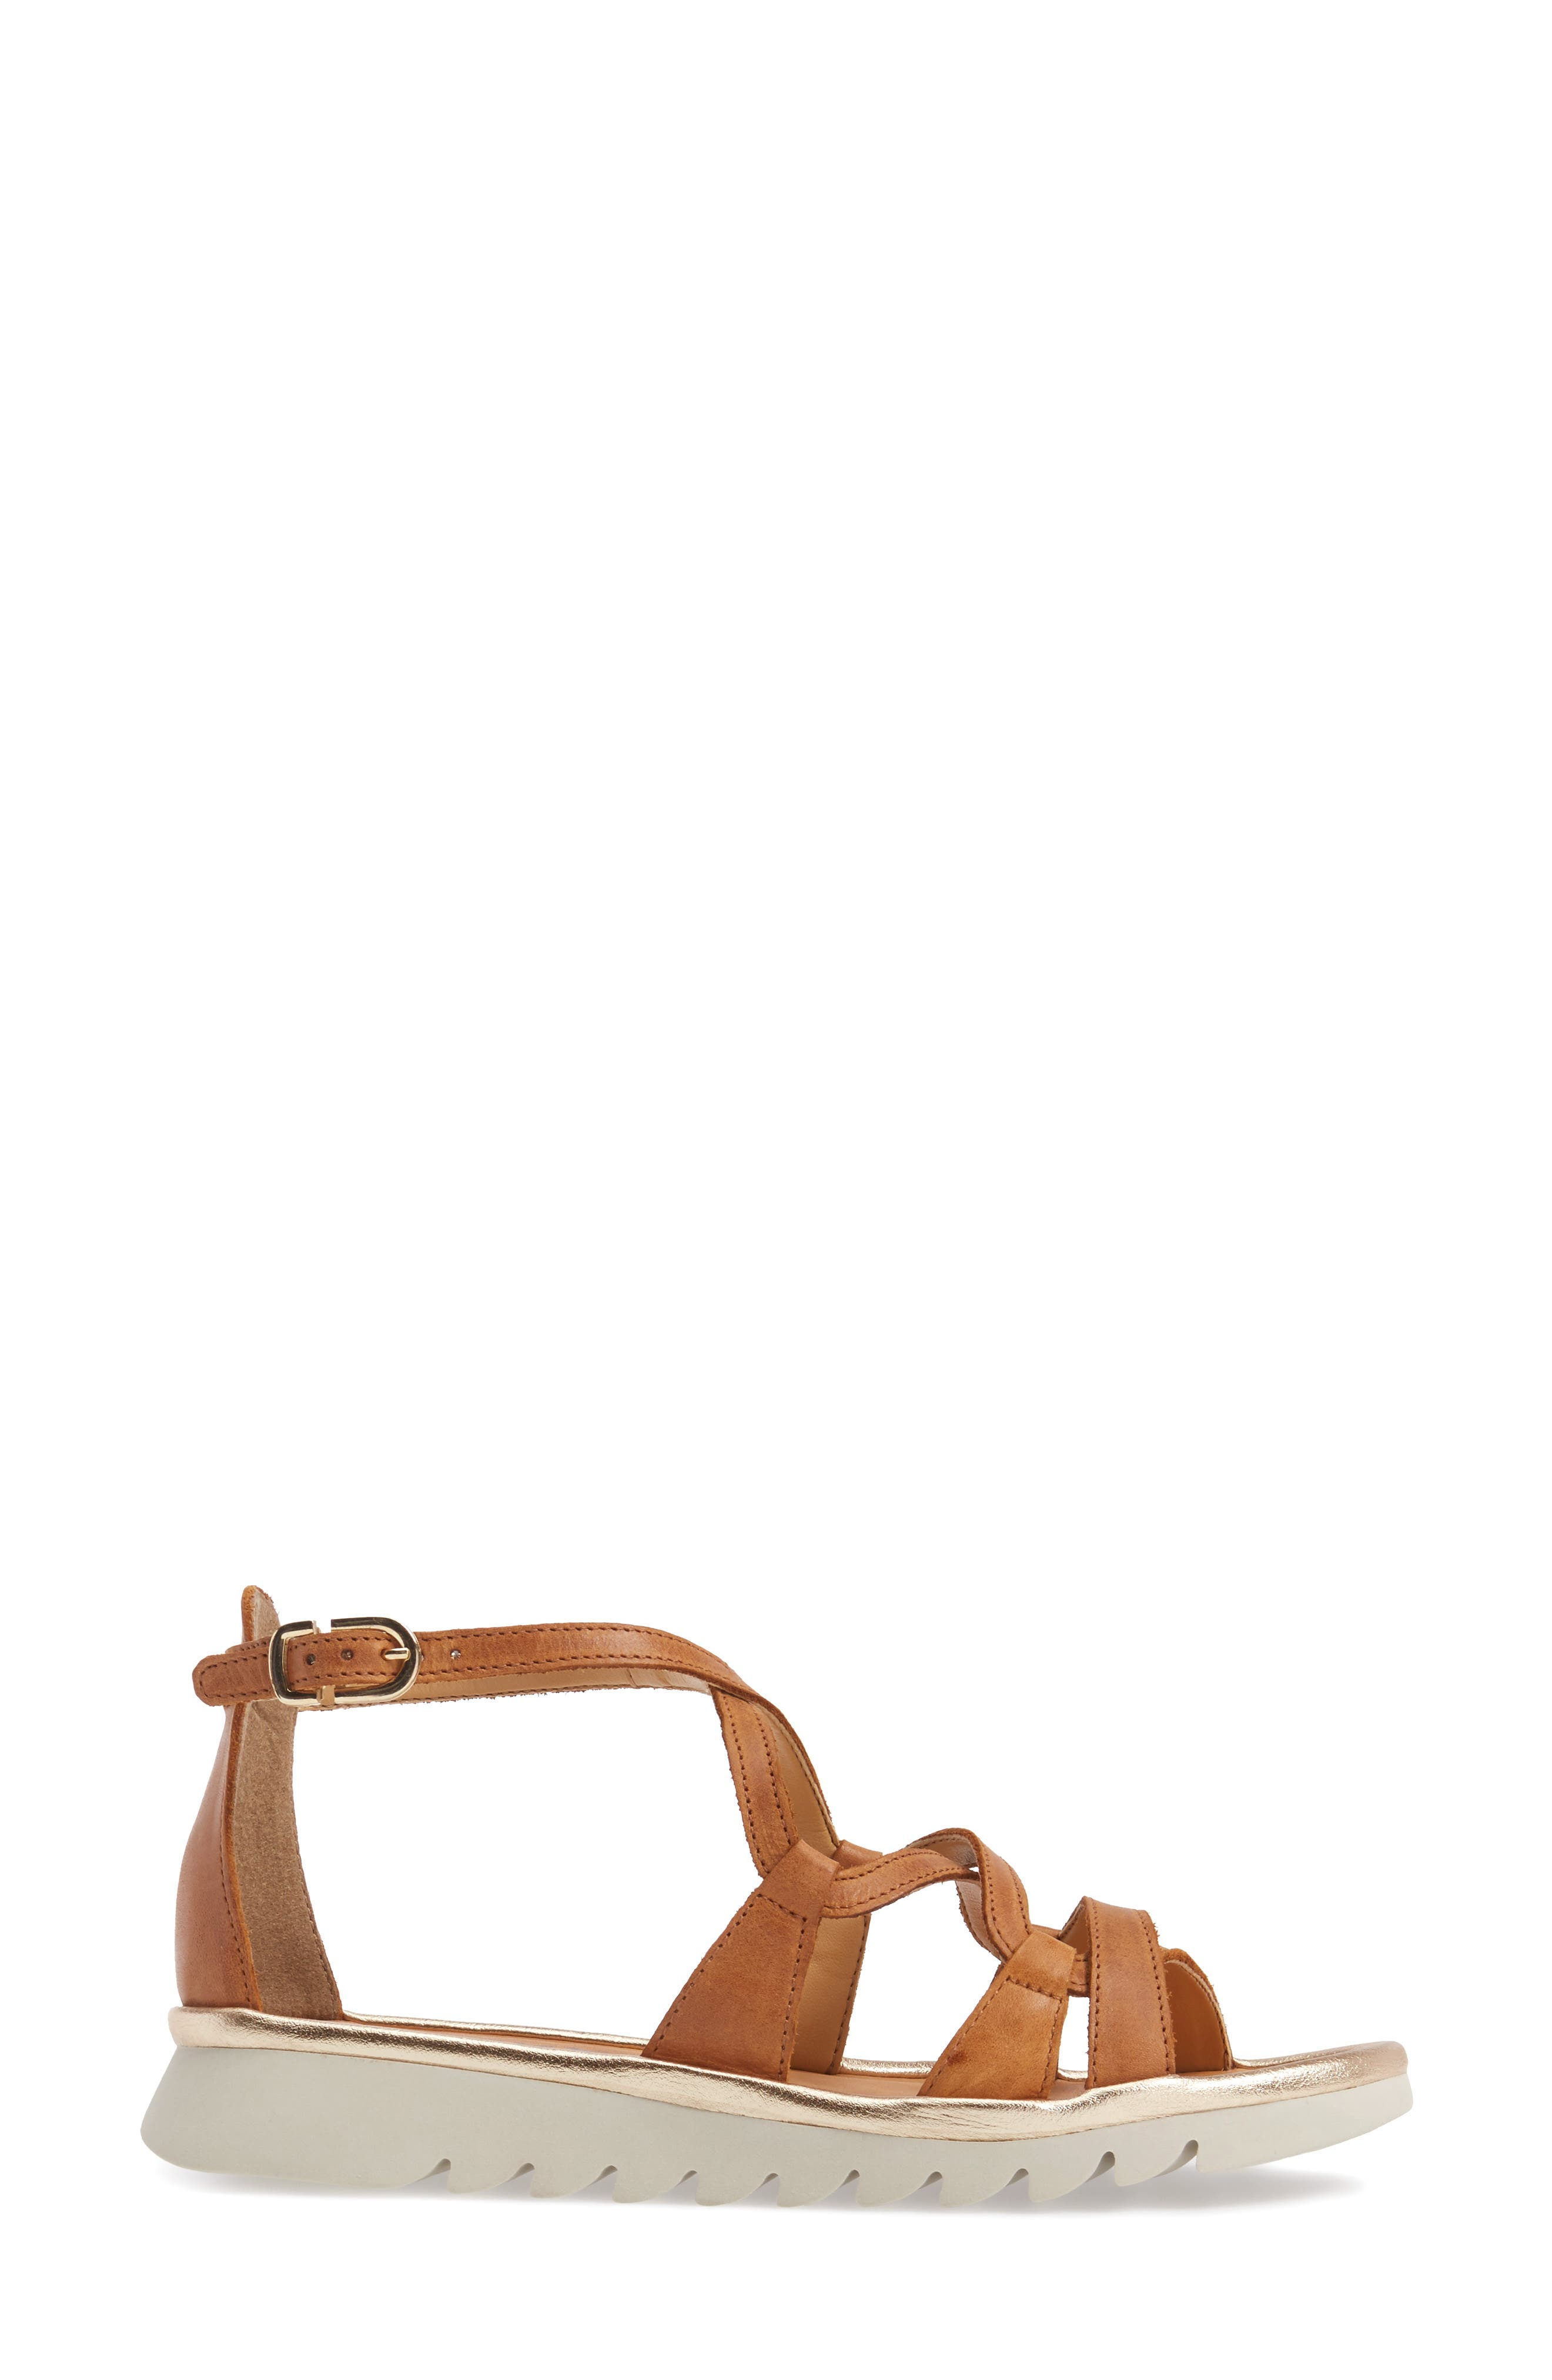 Catch a Wave Sandal,                             Alternate thumbnail 3, color,                             Cognac Leather